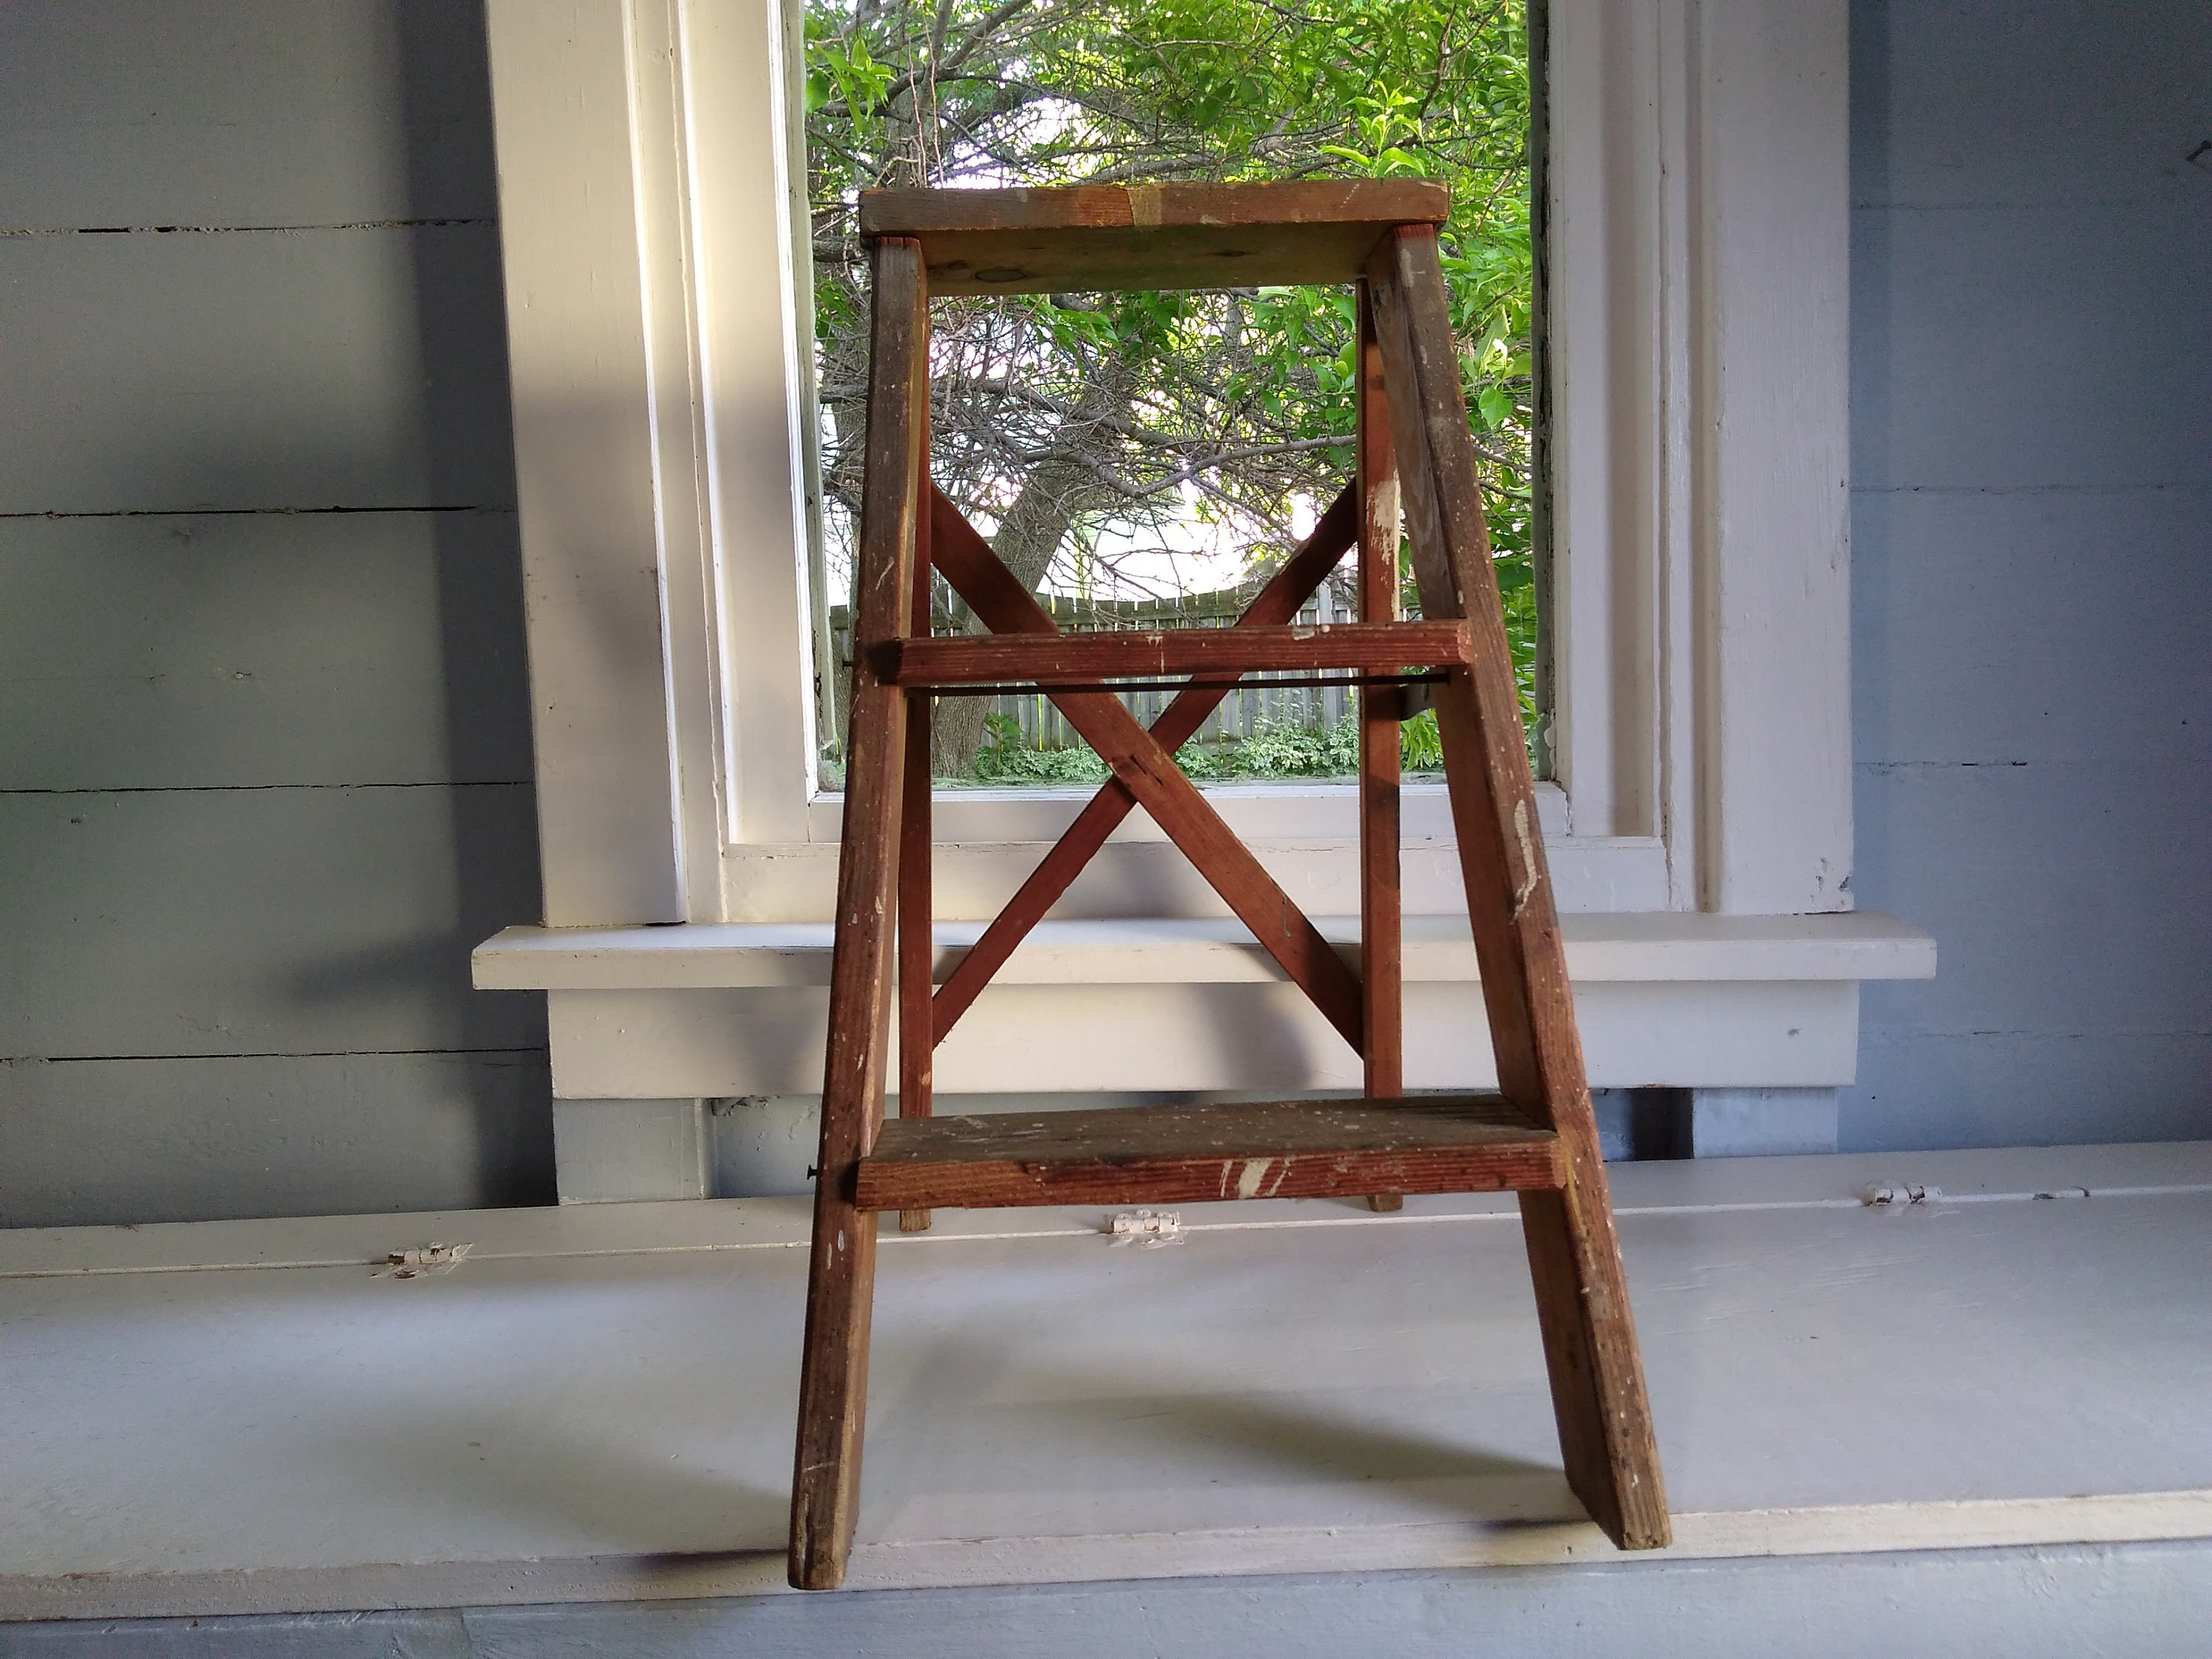 Vintage Wood 2 Step Ladder Short Old Wood Ladder Plant Stand Display Ladder Country Chic Farmhouse Decor Photo Prop Rhymeswithdaughter